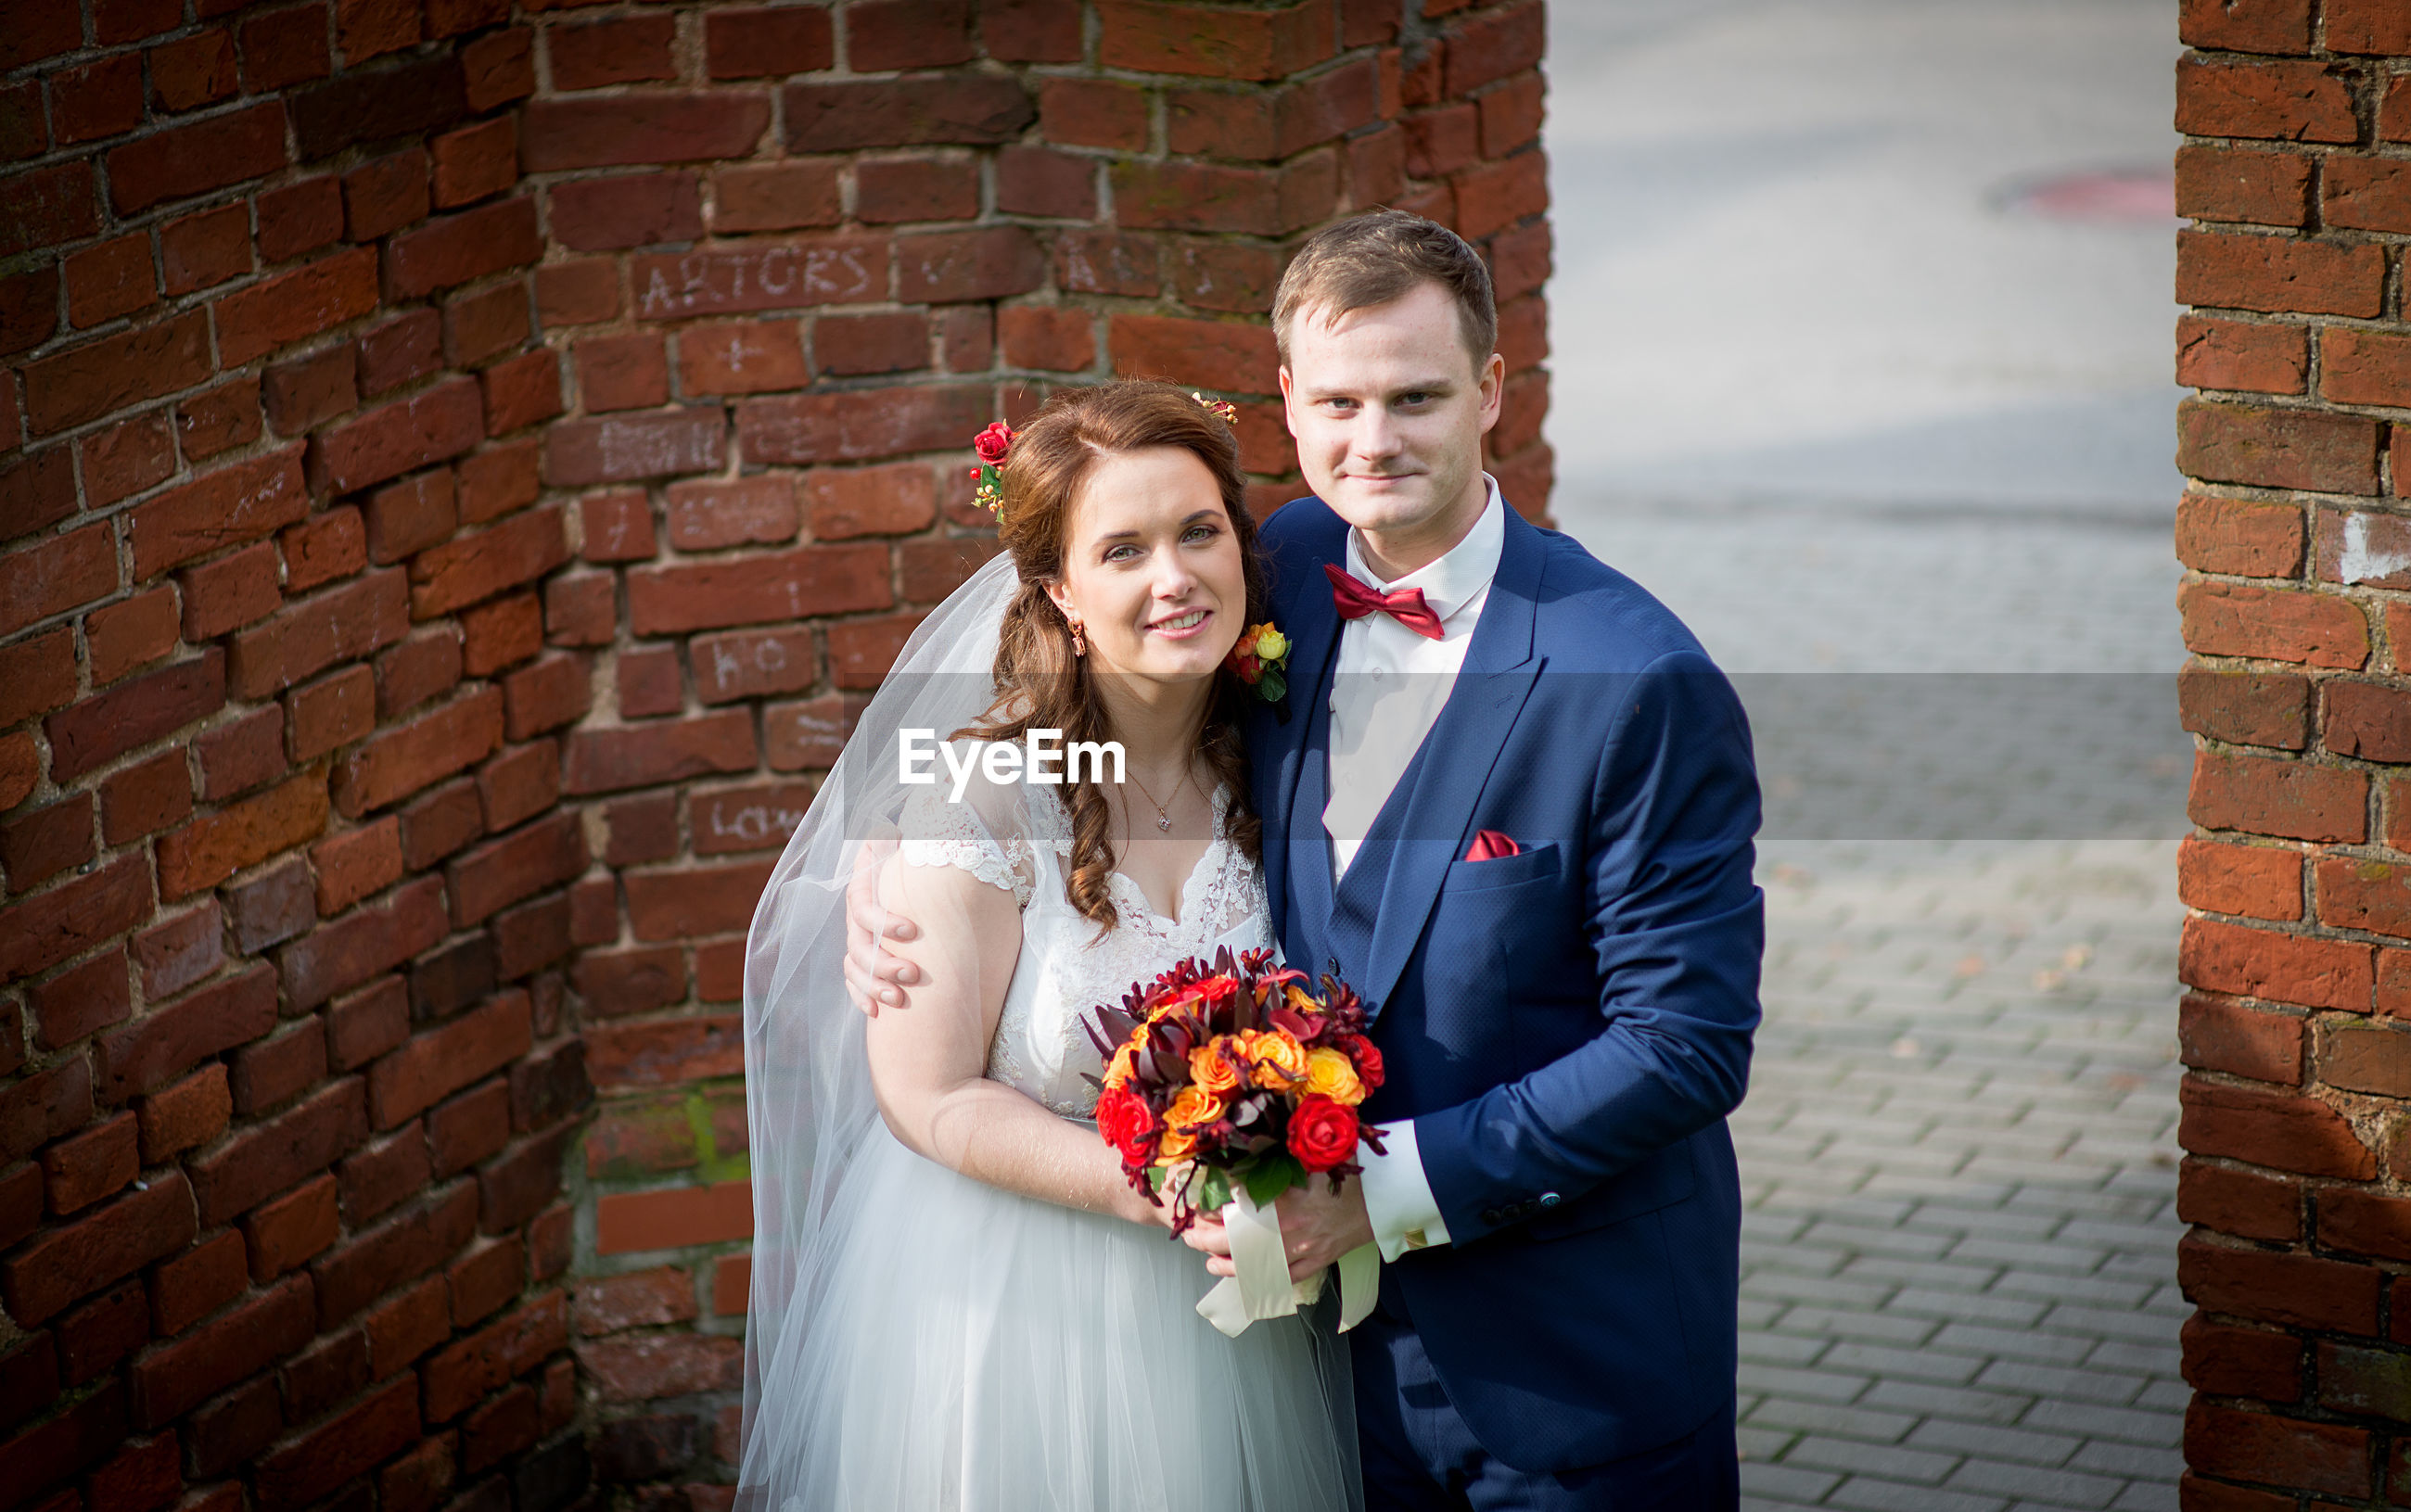 Bride and groom standing by brick wall